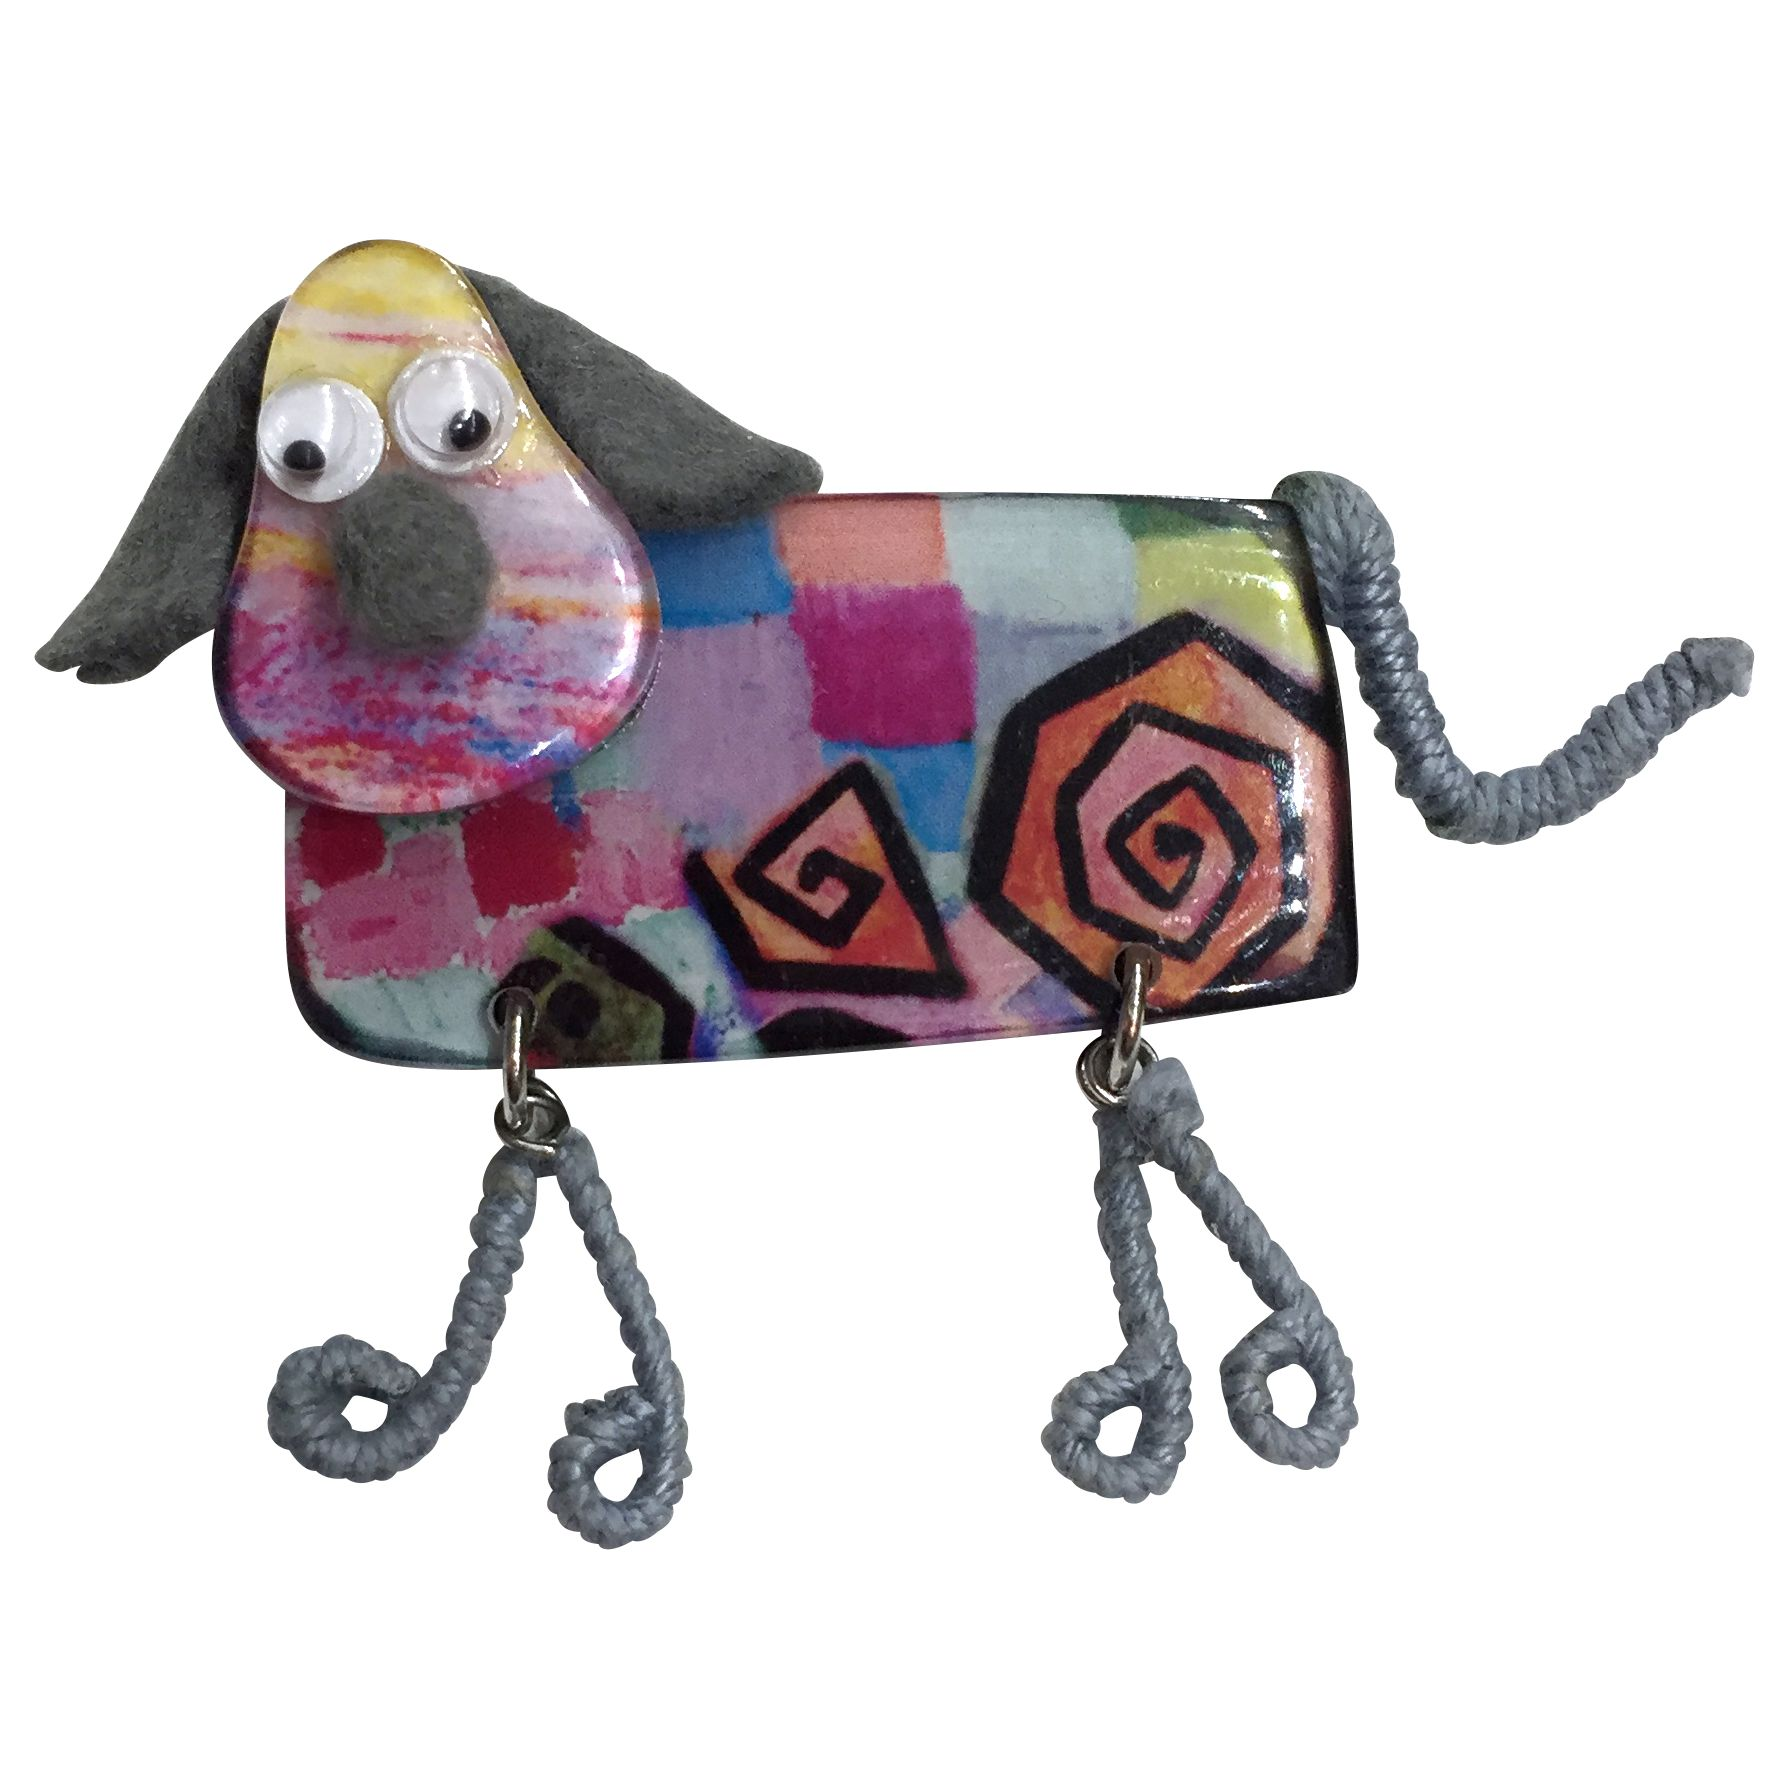 One Button One Button Resin Dangly Legs Doggy Brooch, Multi